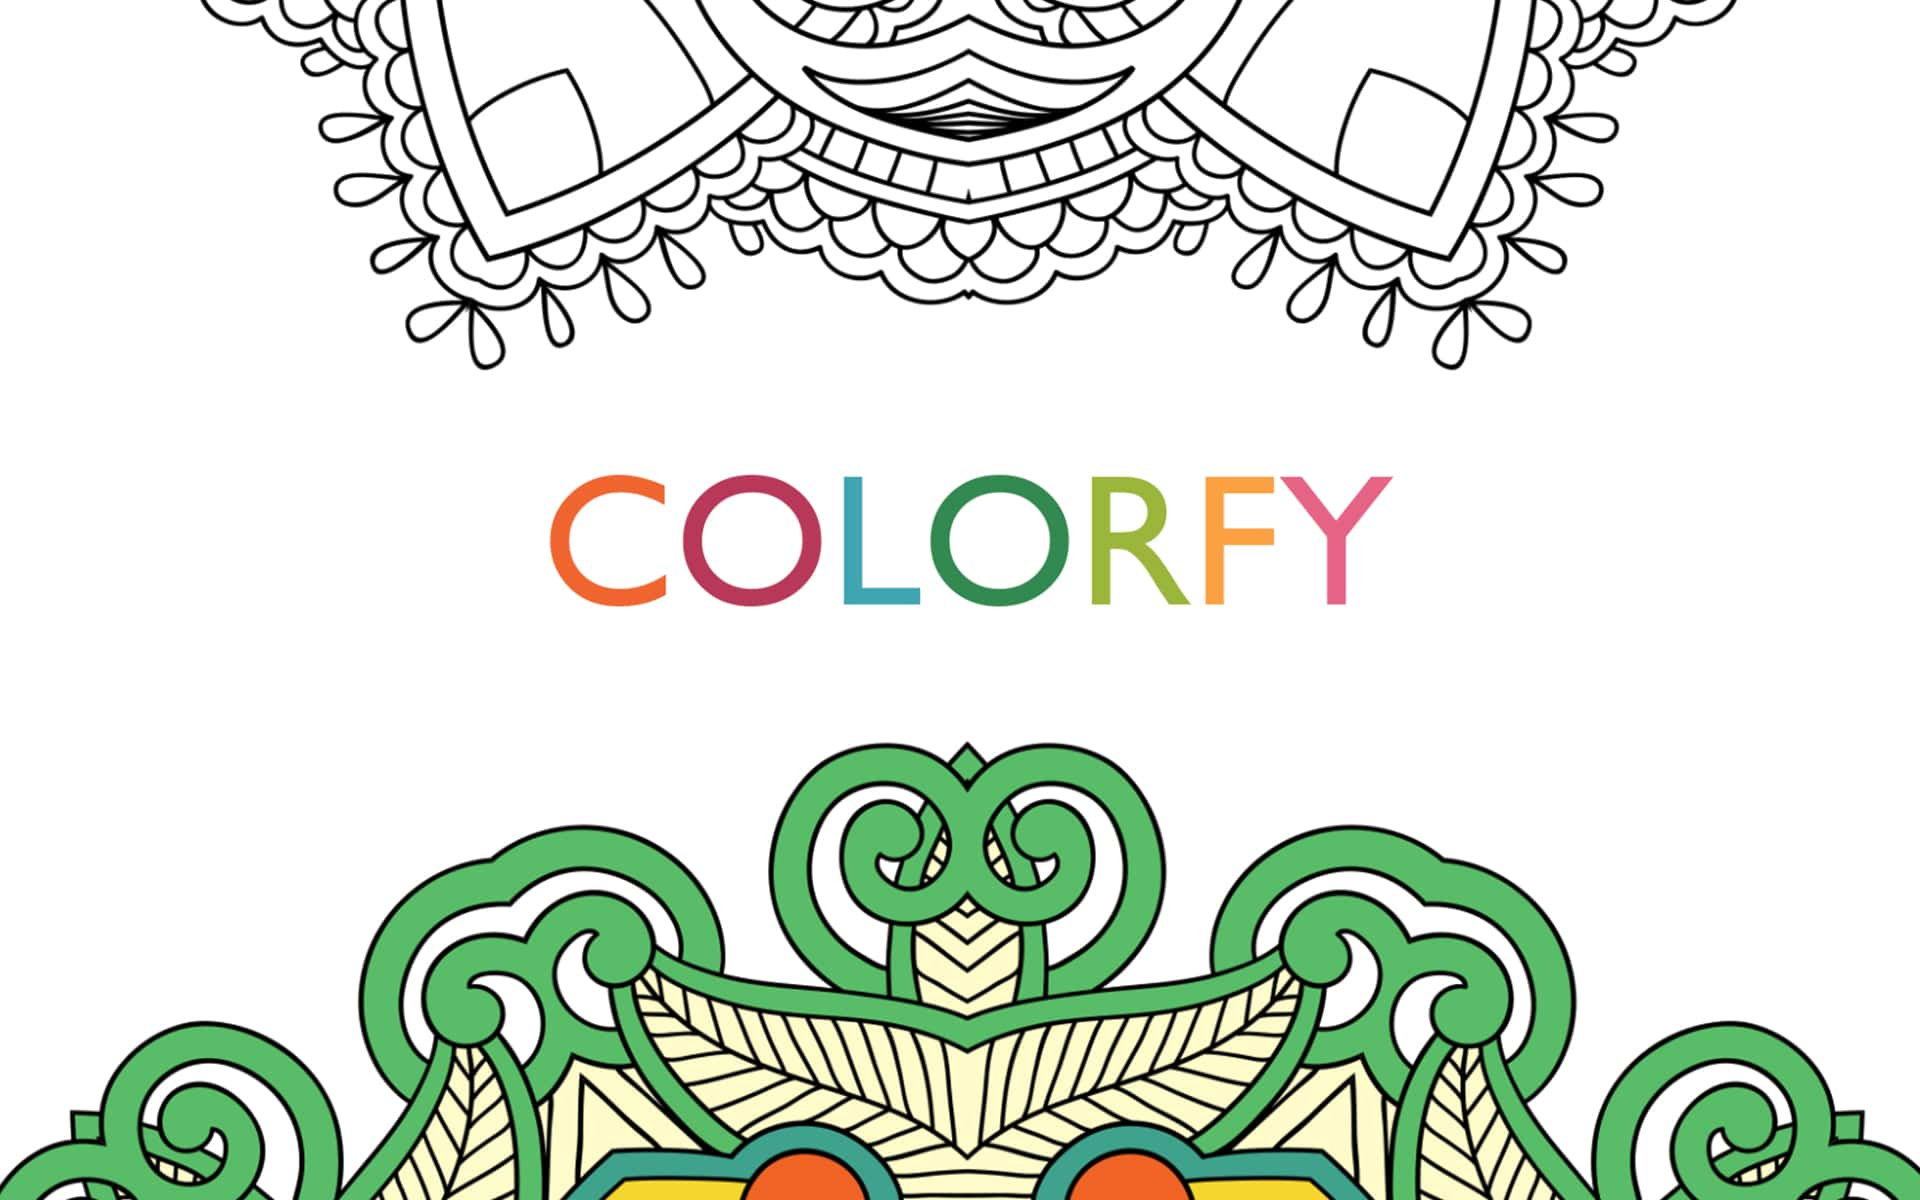 13. Colorfy for Windows 10 PC 1